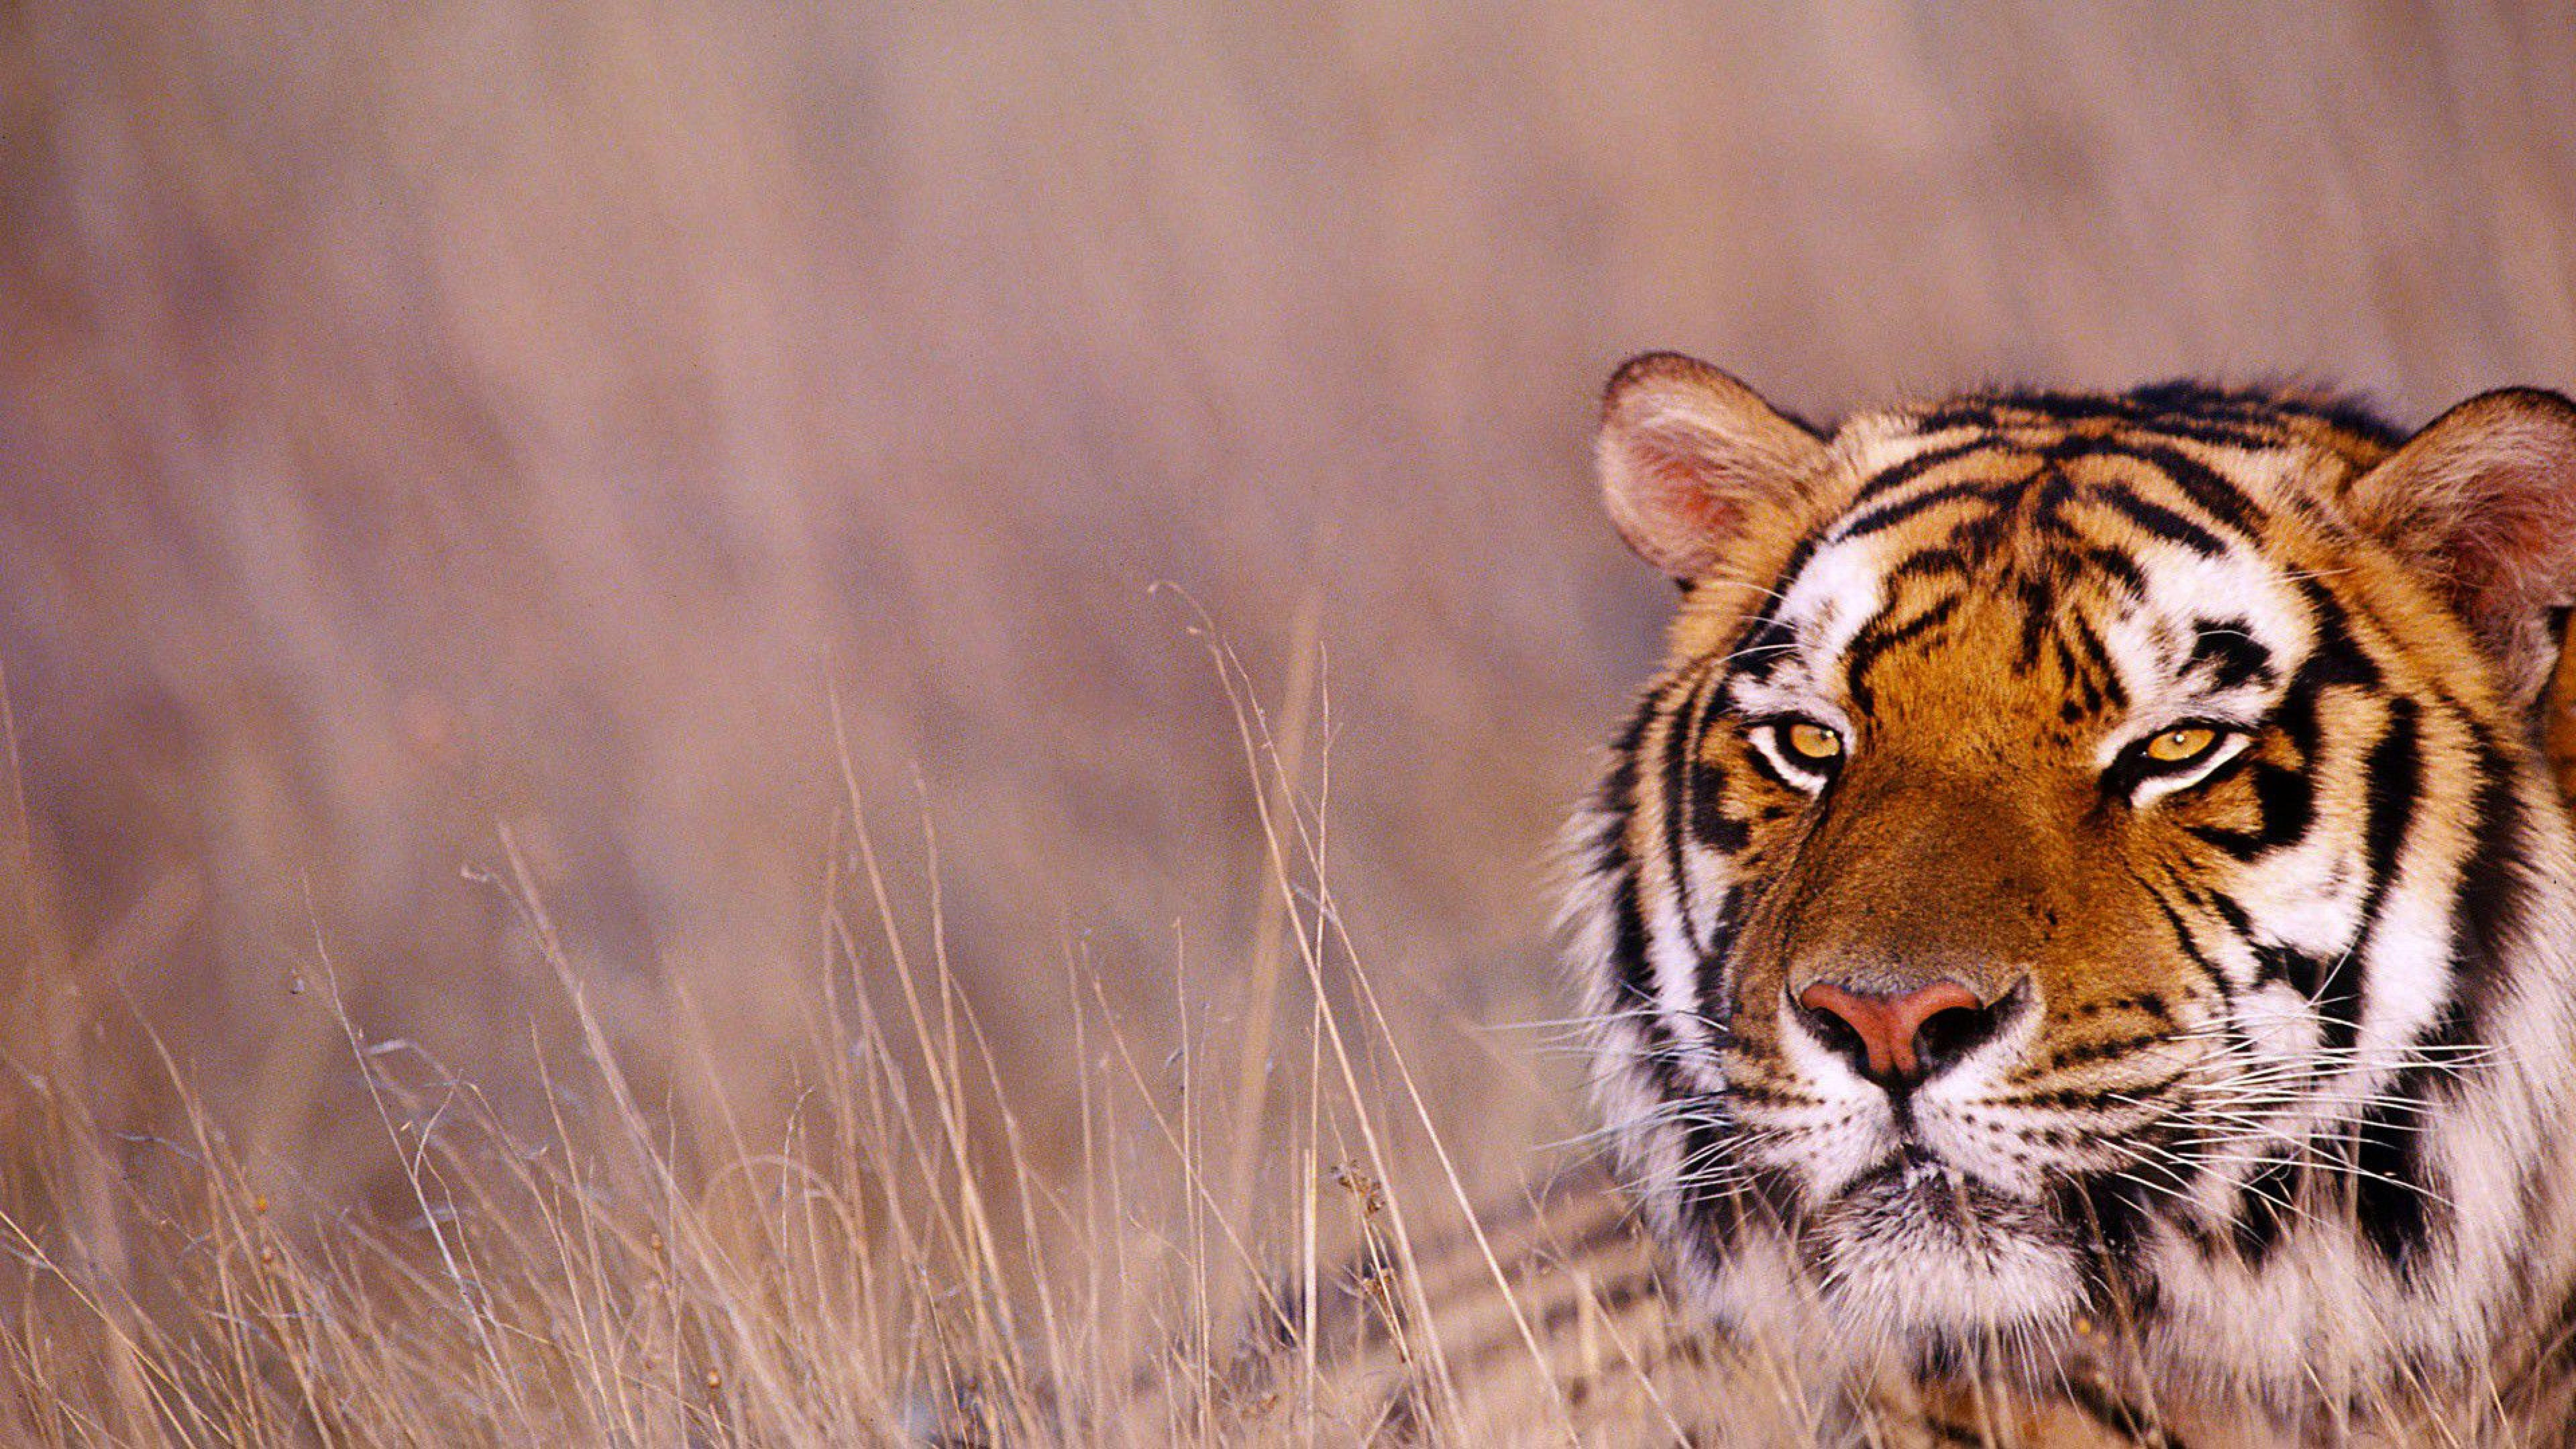 Tiger Animals Wallpapers